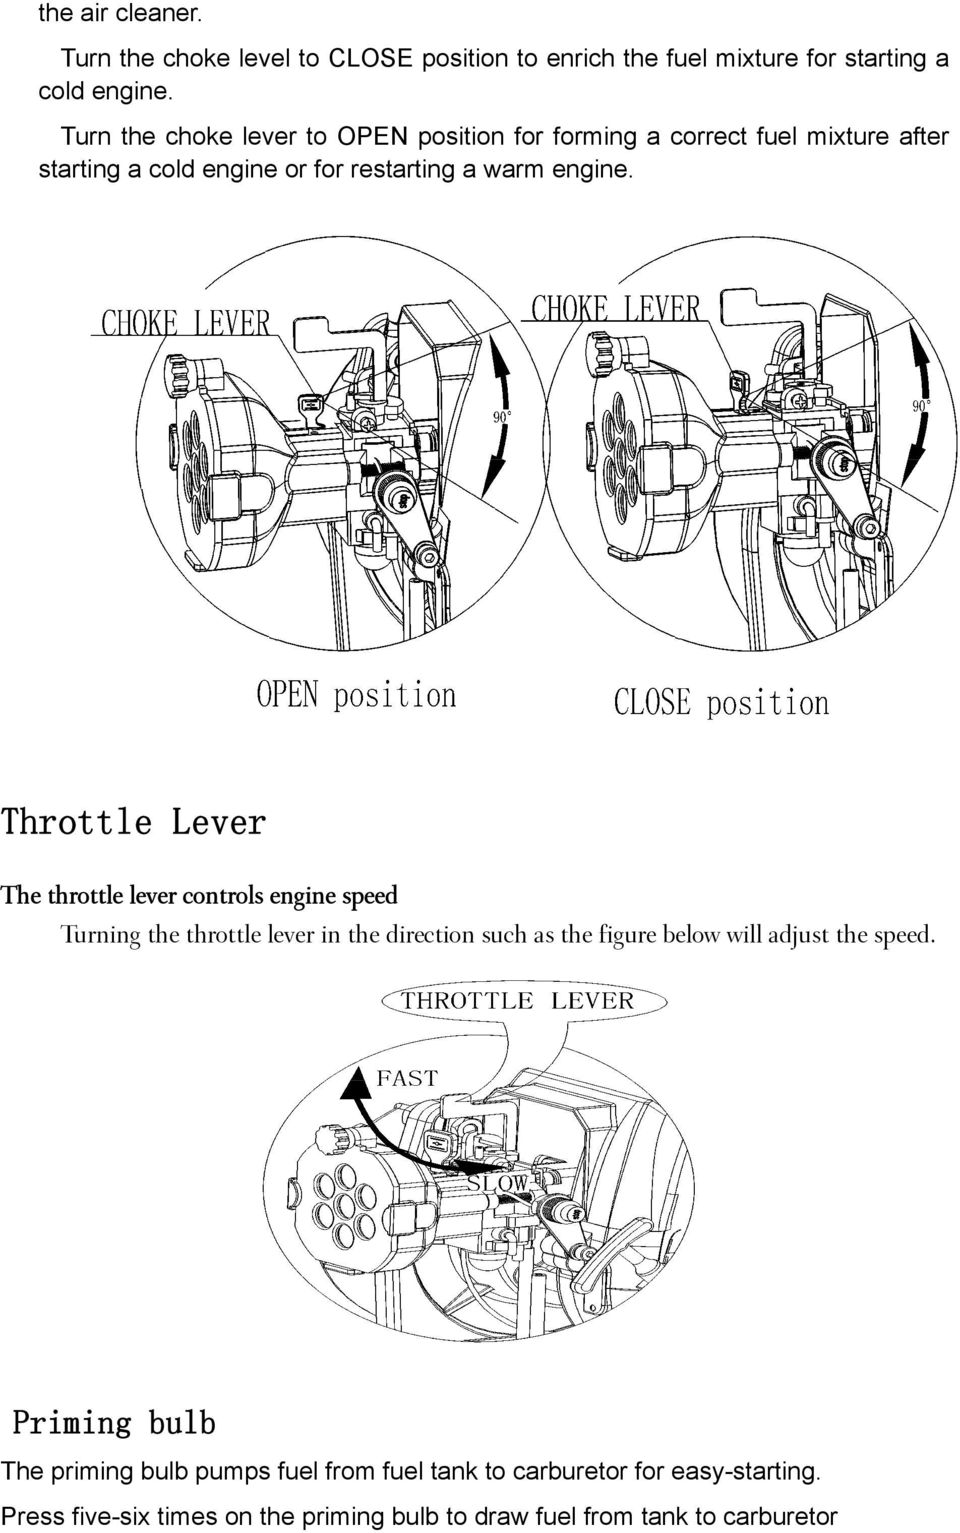 Throttle Lever The throttle lever controls engine speed Turning the throttle lever in the direction such as the figure below will adjust